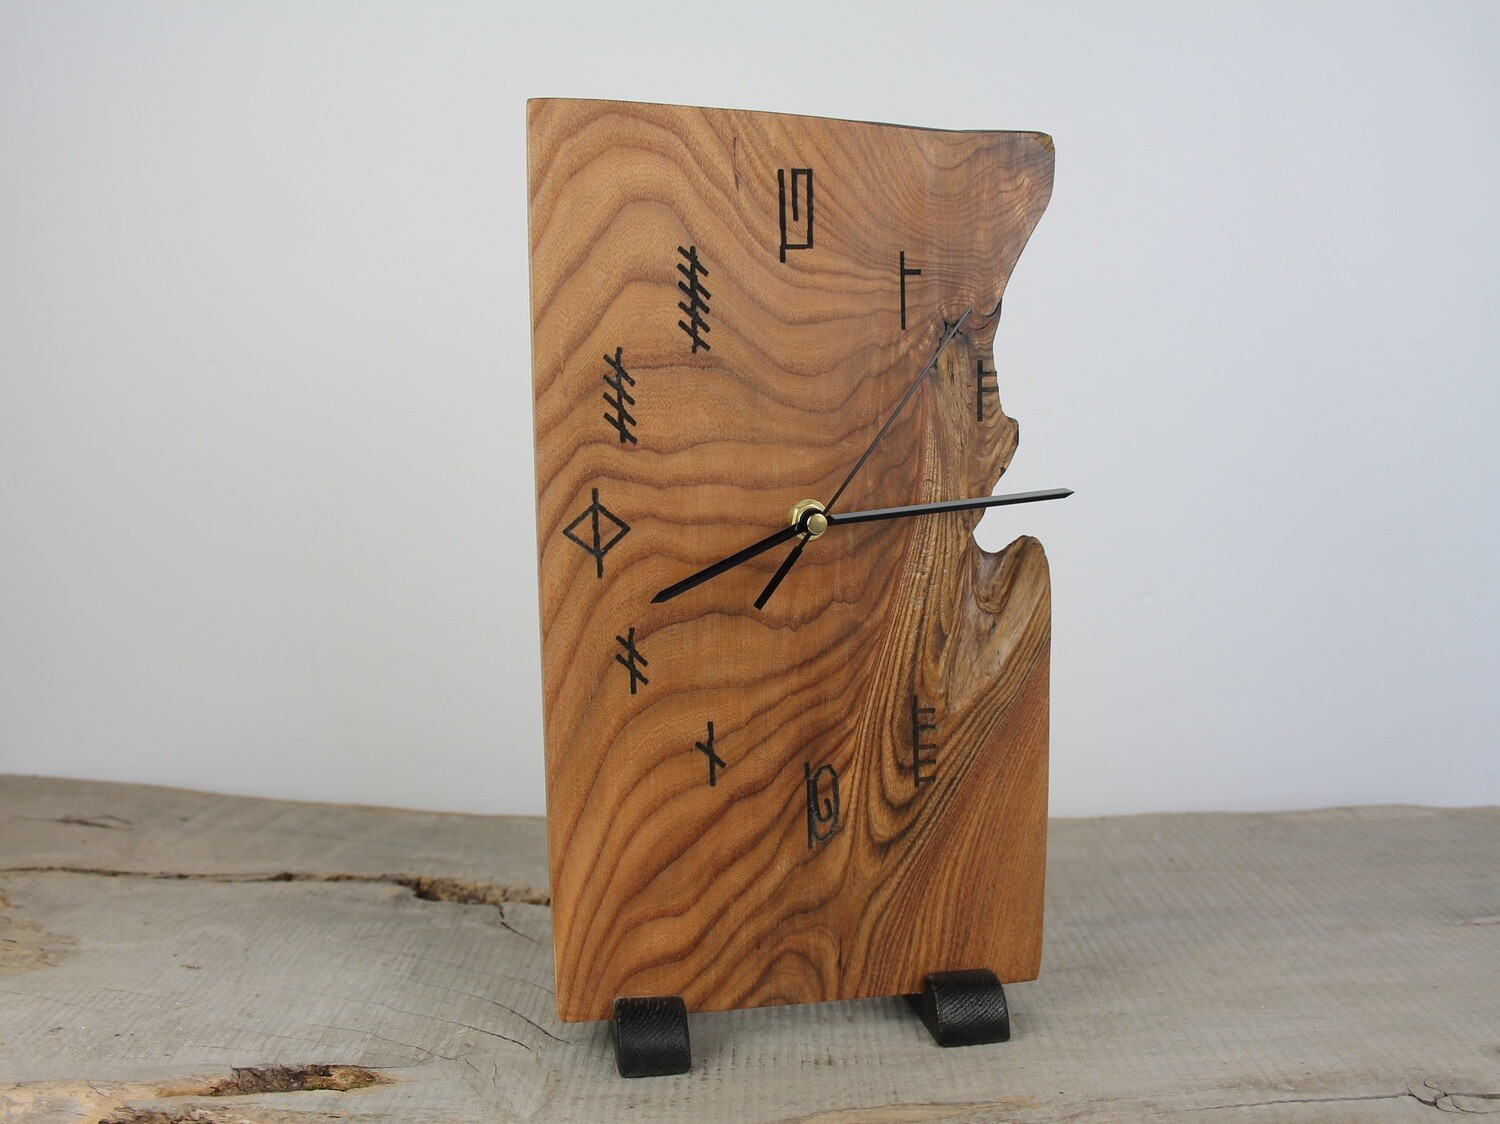 Wooden Elm Clock With Ogham Writing